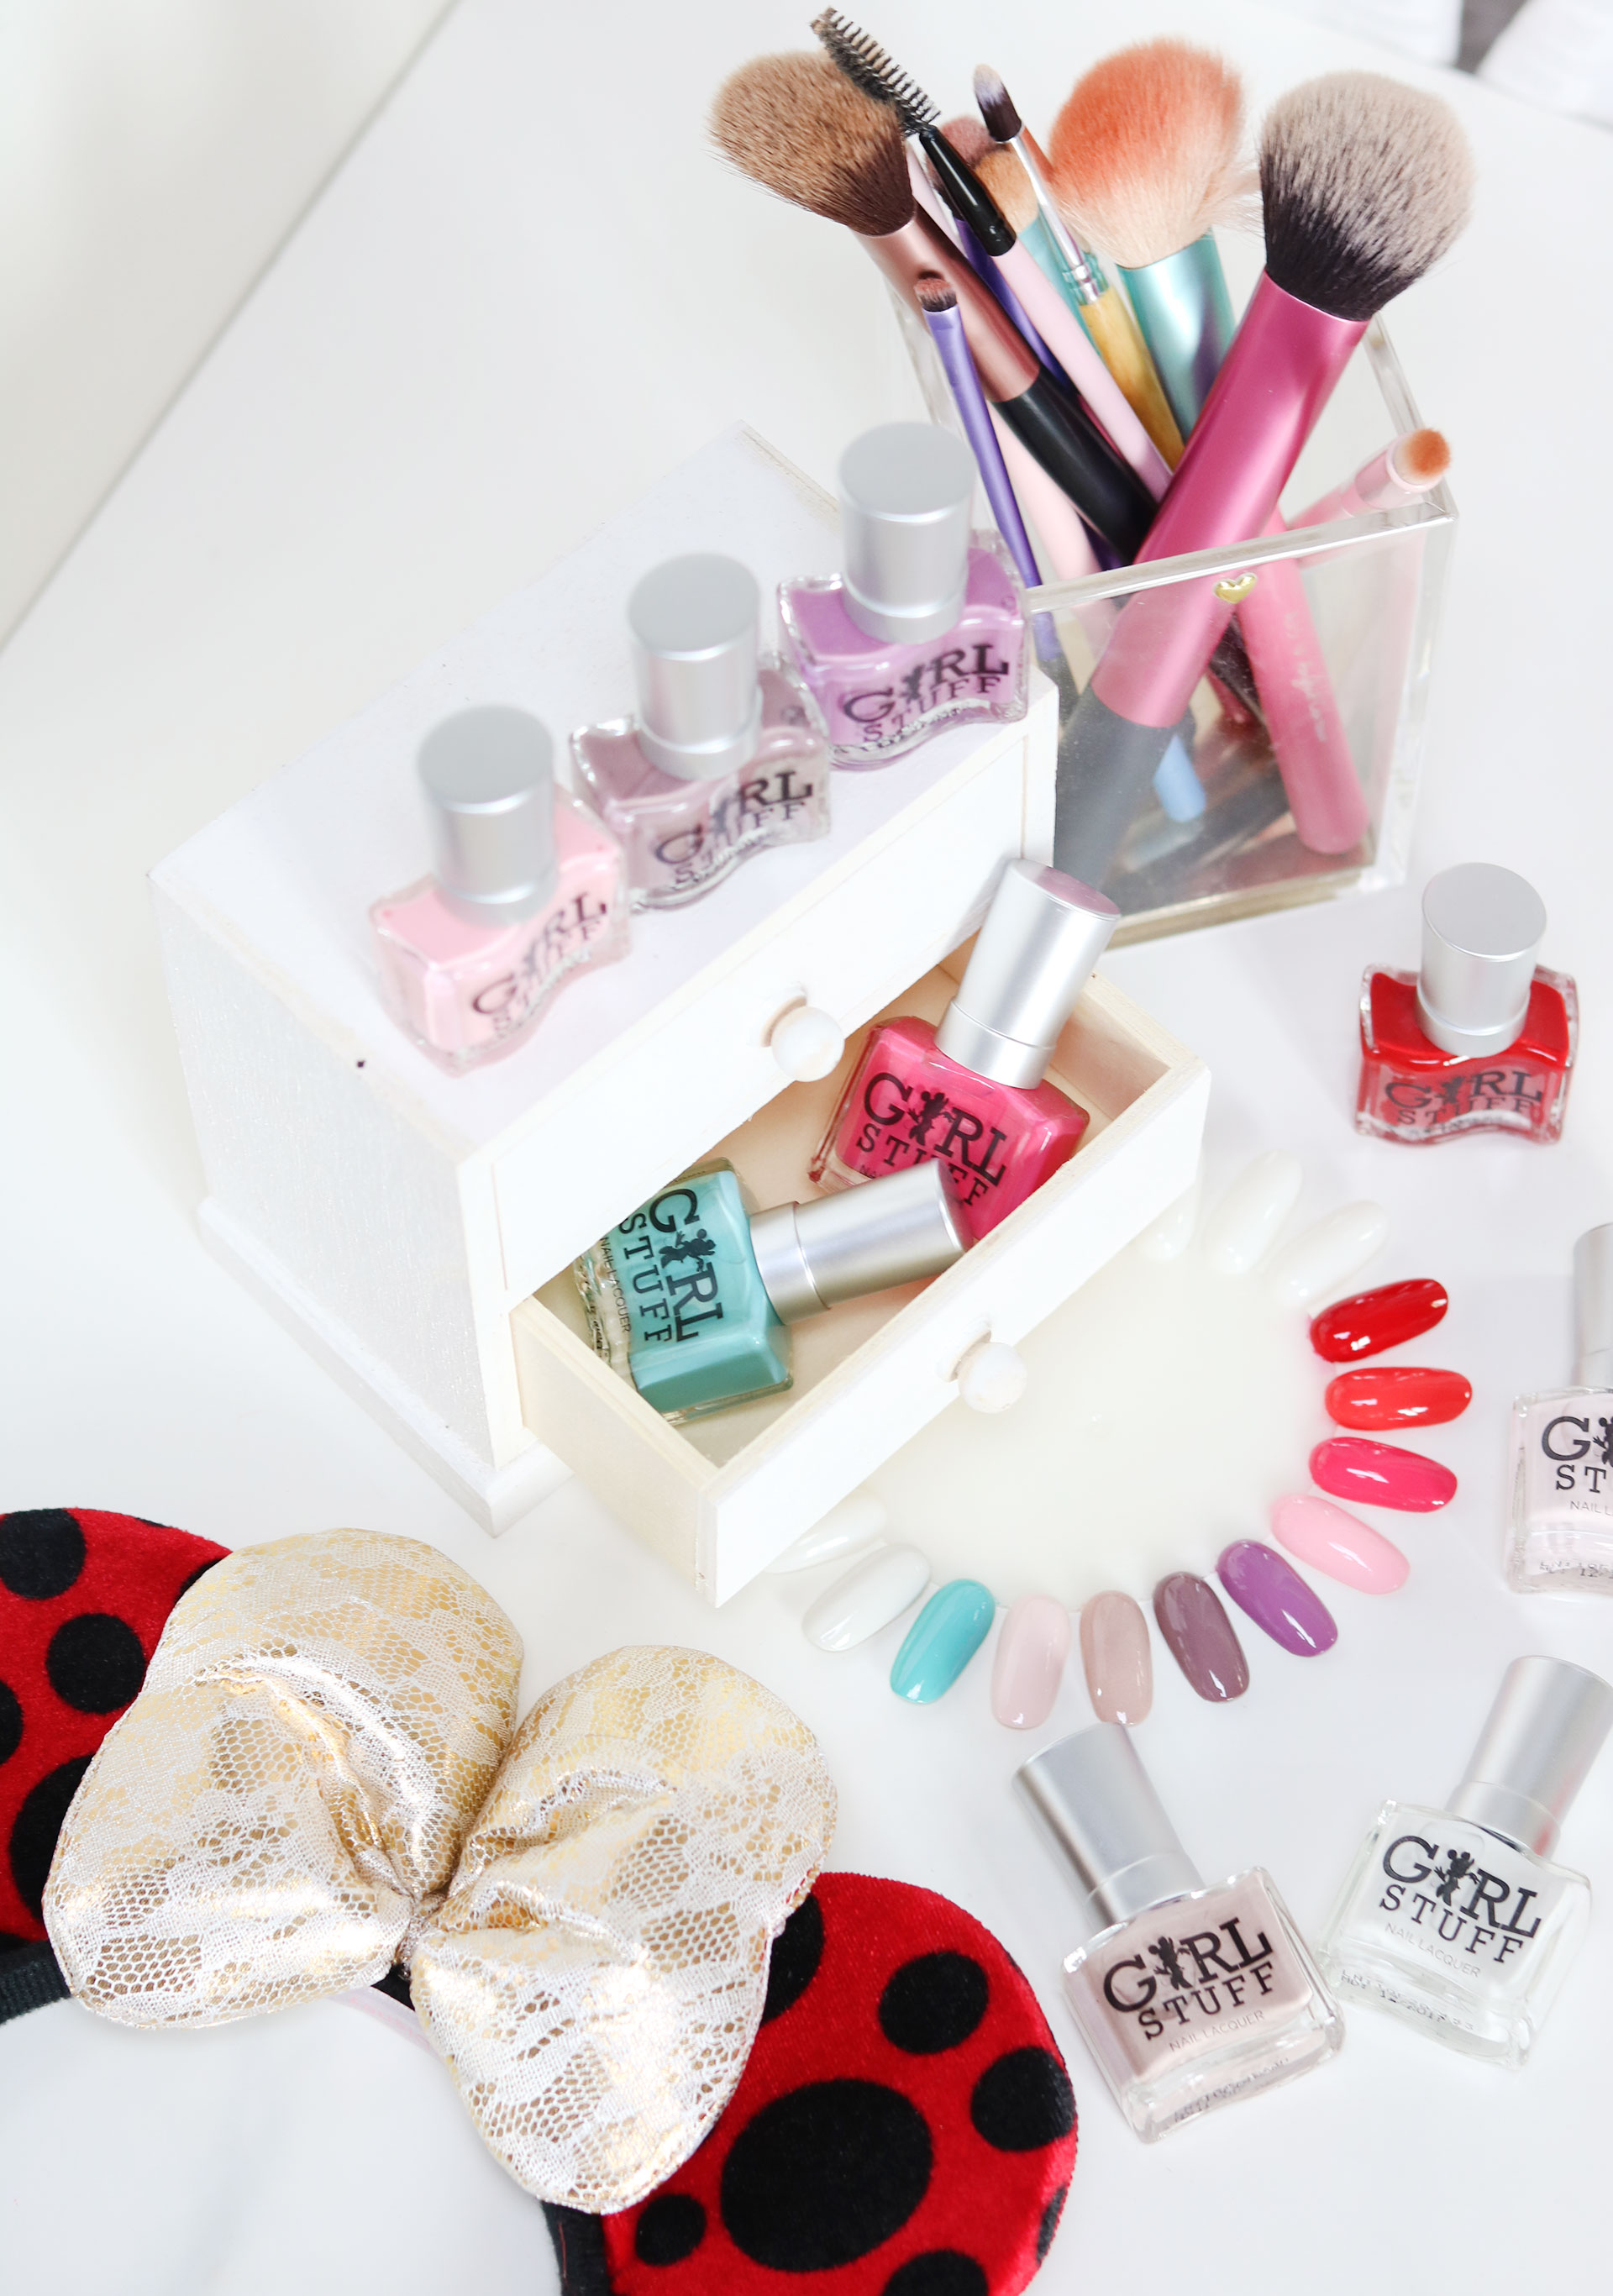 2 Girlstuff Minnie Mouse Nail Lacquers Collection Review Swatches Photos - Gen-zel She Sings Beauty